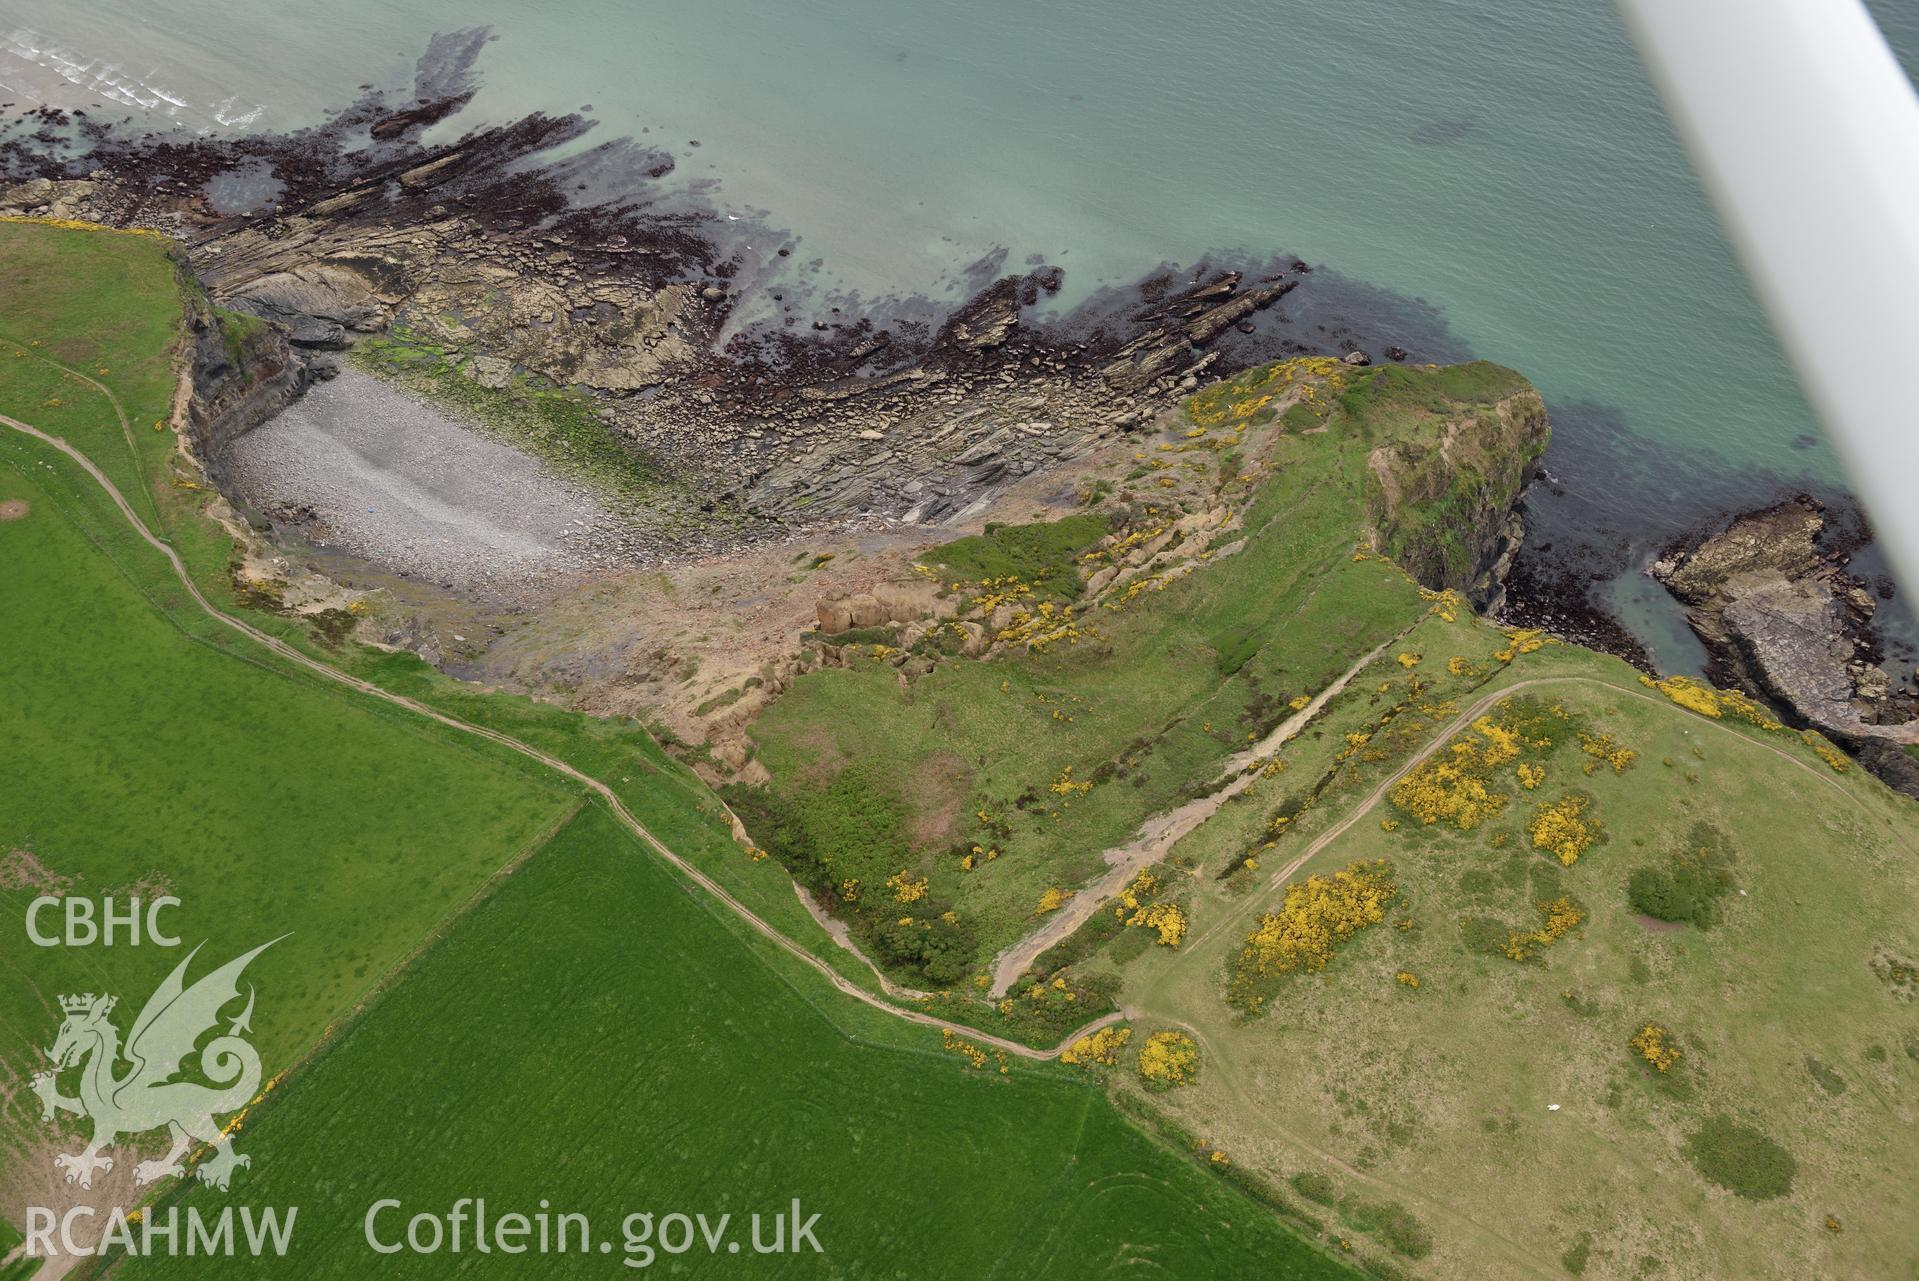 Black Point Rath coastal promontory fort. Baseline aerial reconnaissance survey for the CHERISH Project. ? Crown: CHERISH PROJECT 2017. Produced with EU funds through the Ireland Wales Co-operation Programme 2014-2020. All material made freely available through the Open Government Licence.